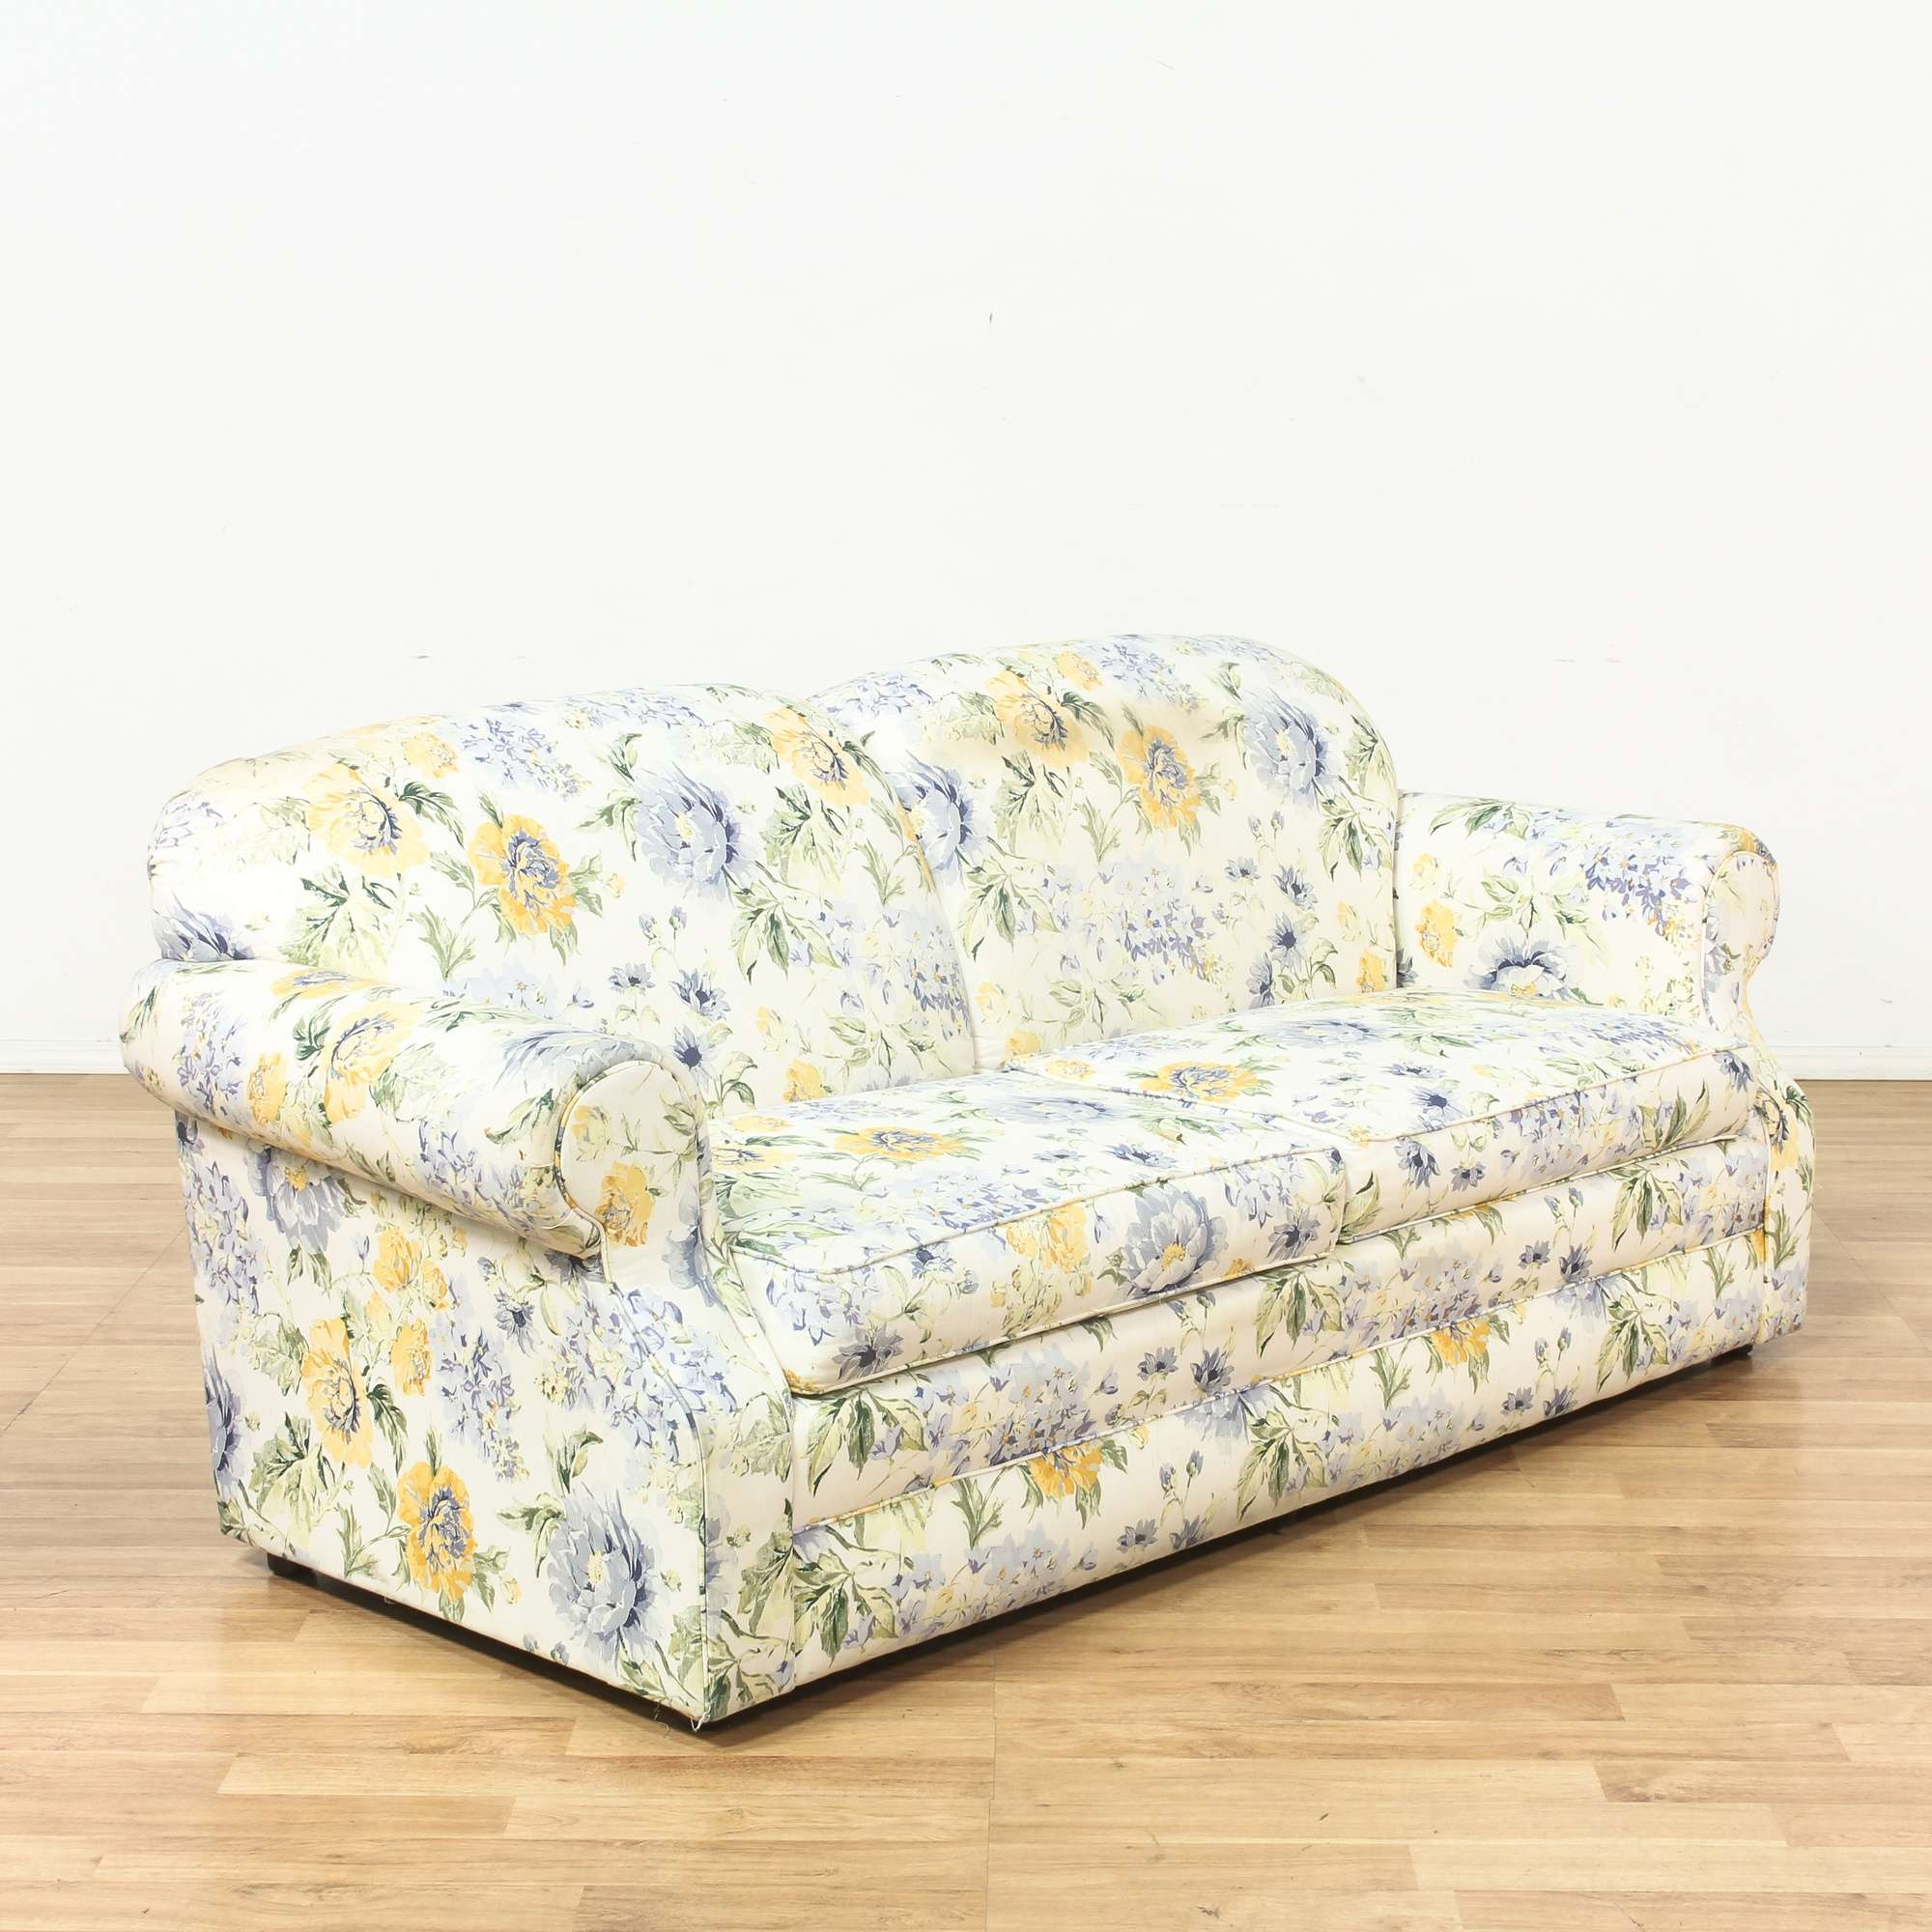 strap overstock lexington sure couch free product floral shipping with fit sofa home today throw garden pet